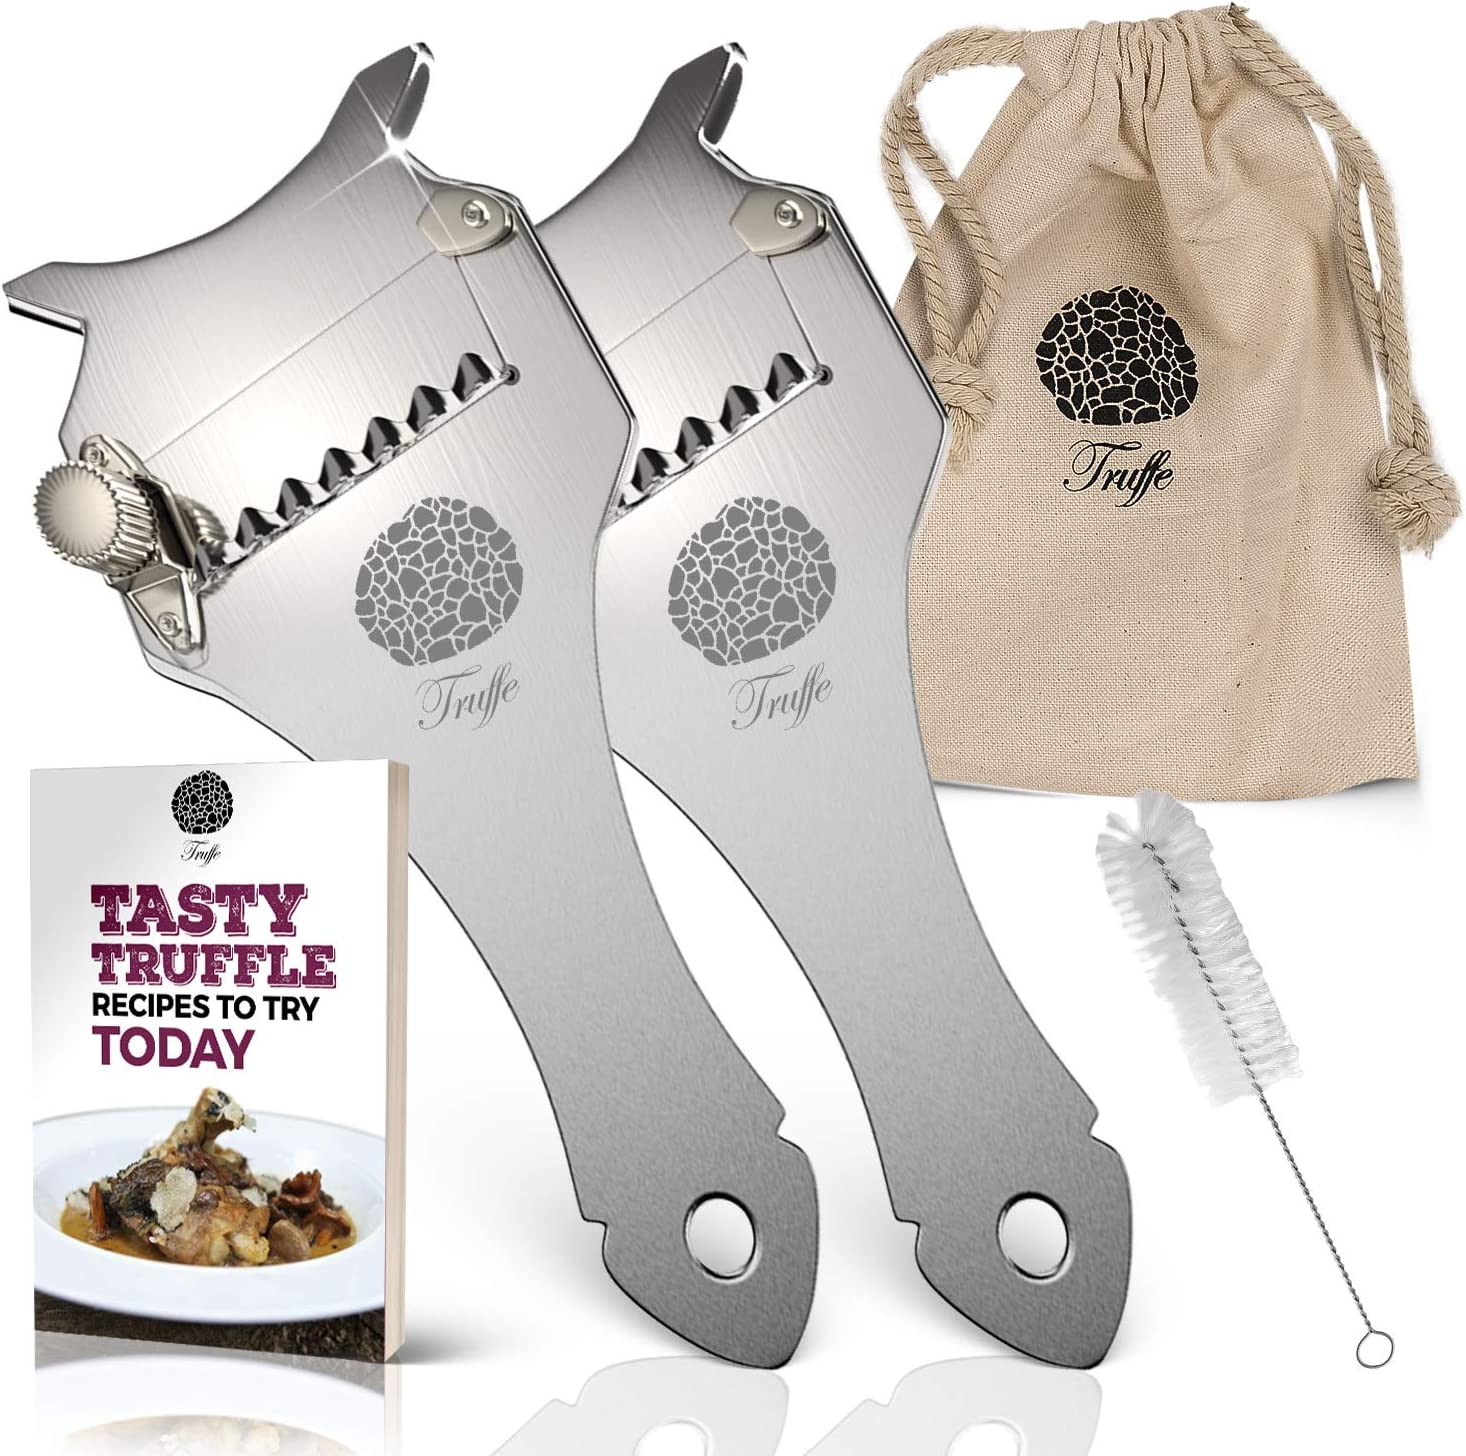 5☆ Truffle Slicer 2 Pack with Chic Fabric Bag, Recipe E-Book & PDF User Guide. Also Shaves Cheese, Garlic, Mushrooms & Veg! Premium Stainless Steel & Adjustable Blade